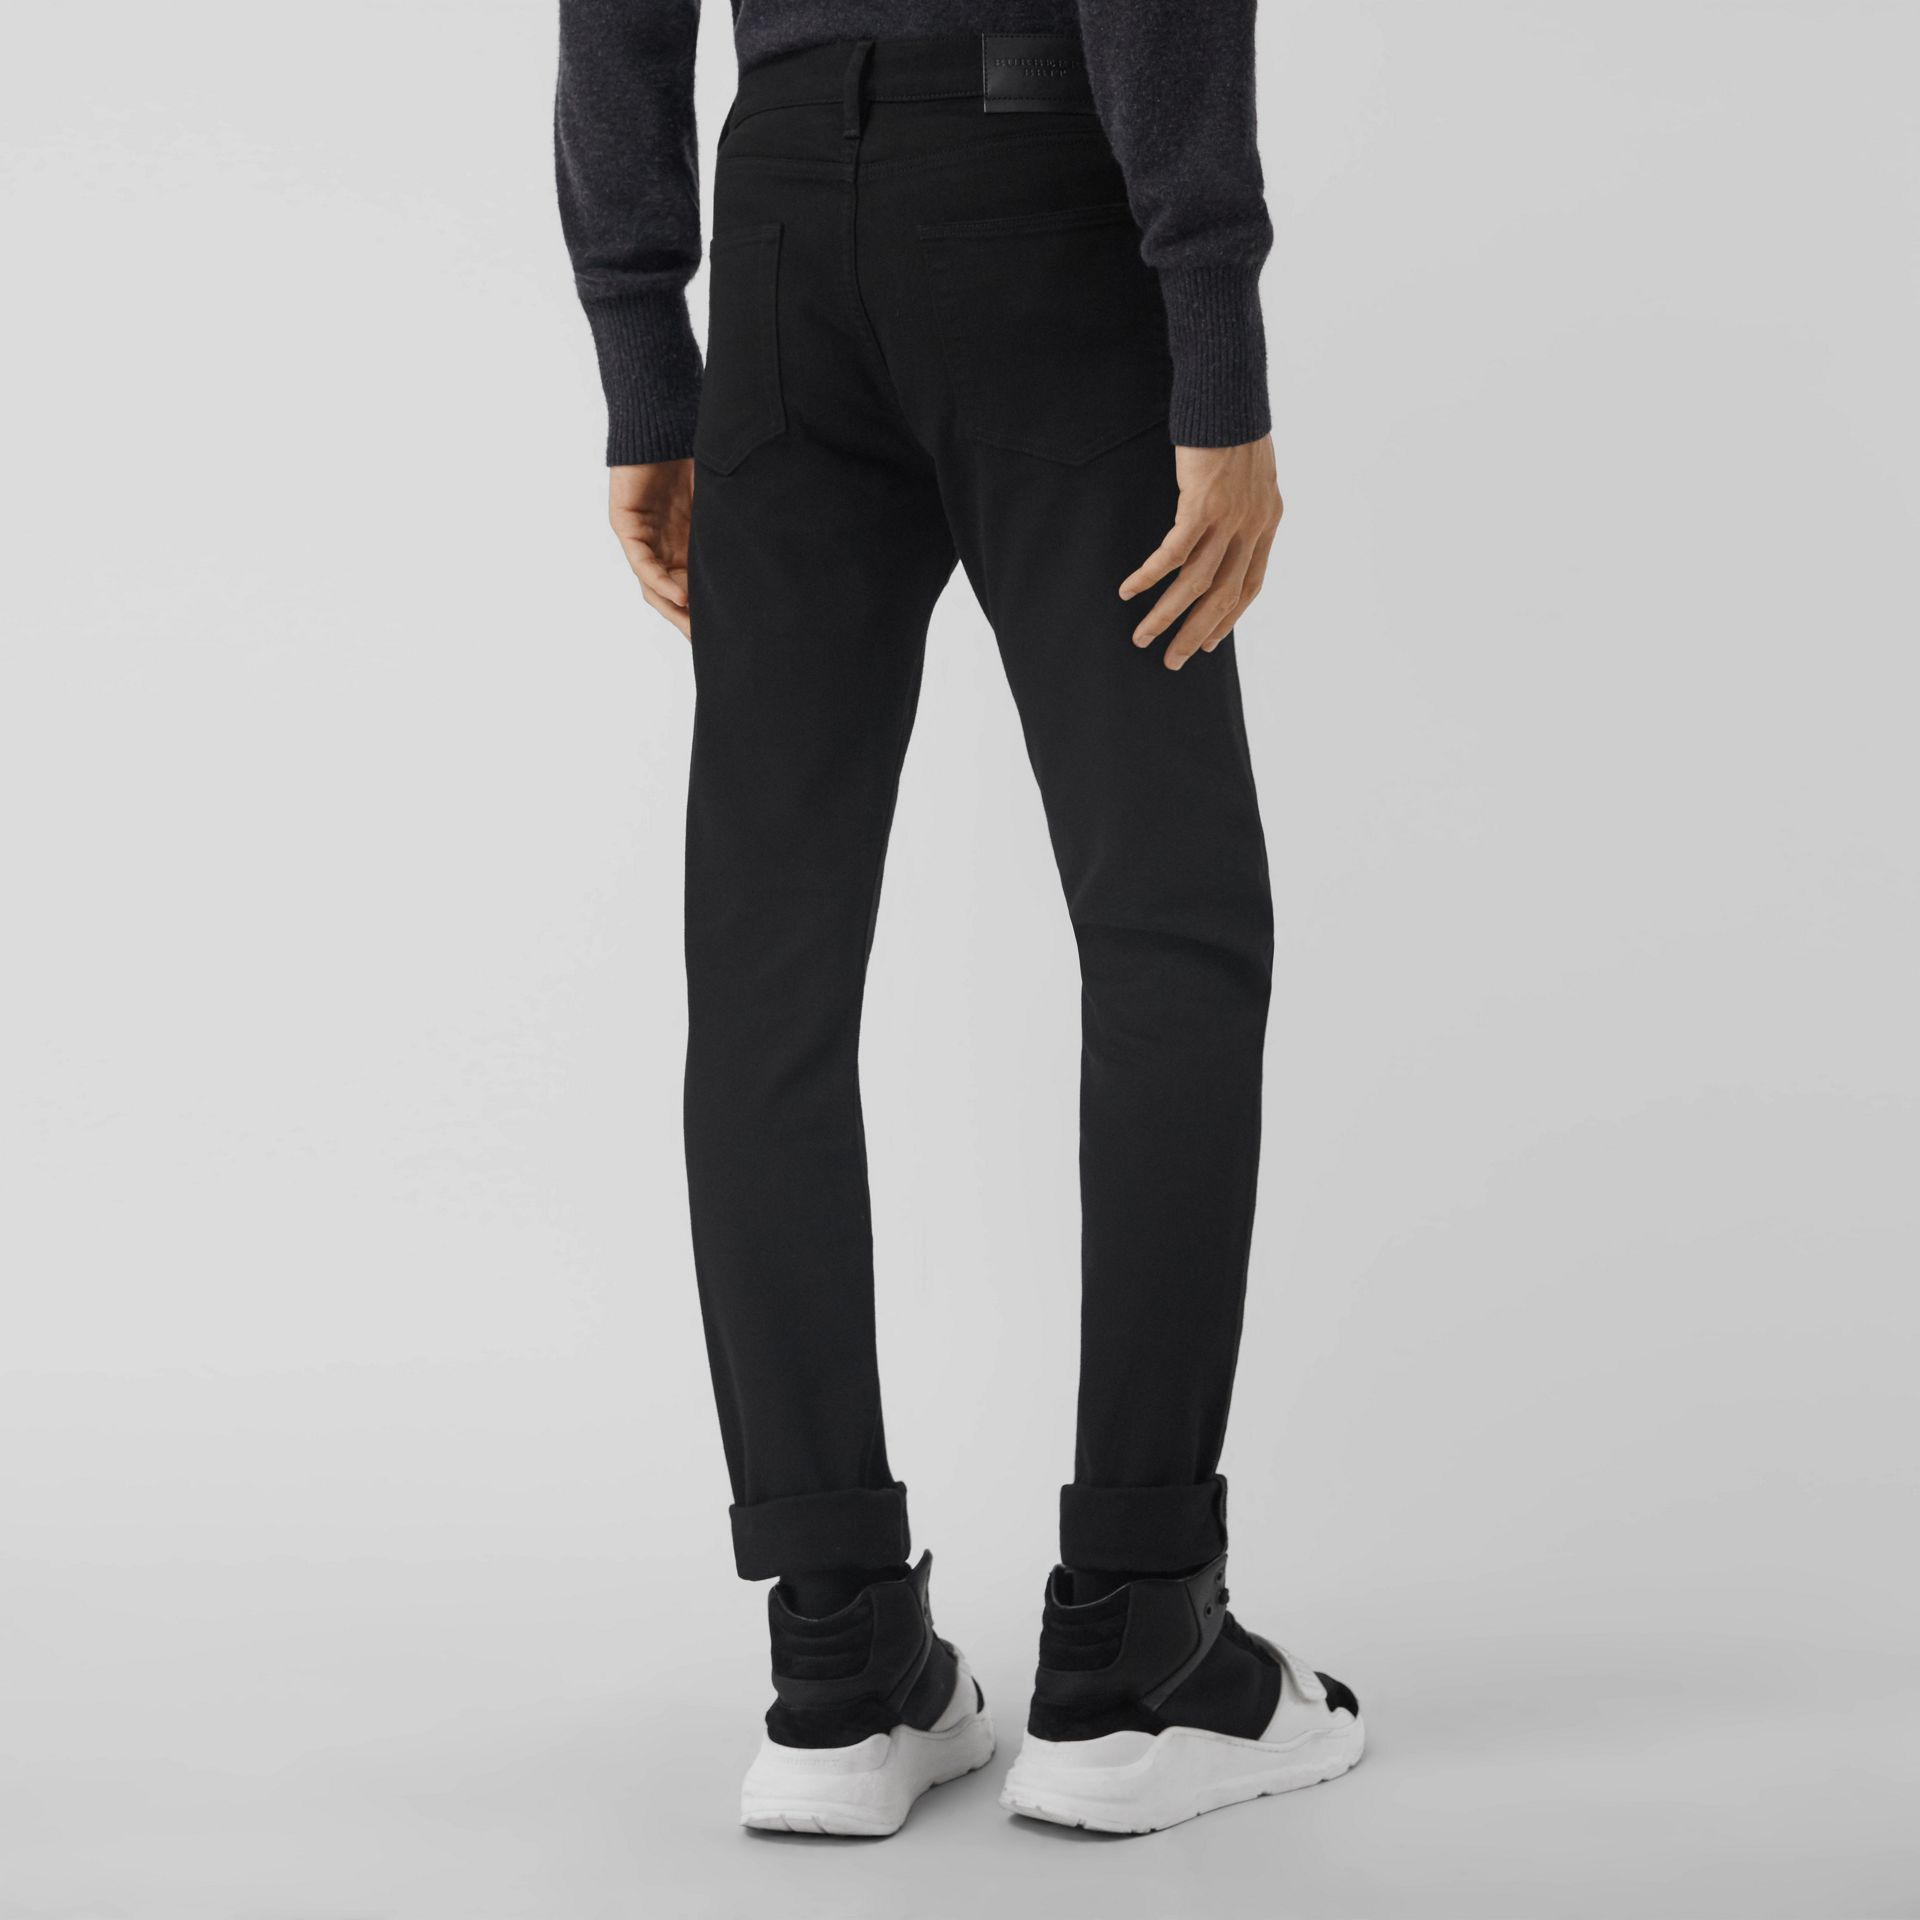 Jean denim extensible de coupe étroite (Noir) - Homme | Burberry - photo de la galerie 2